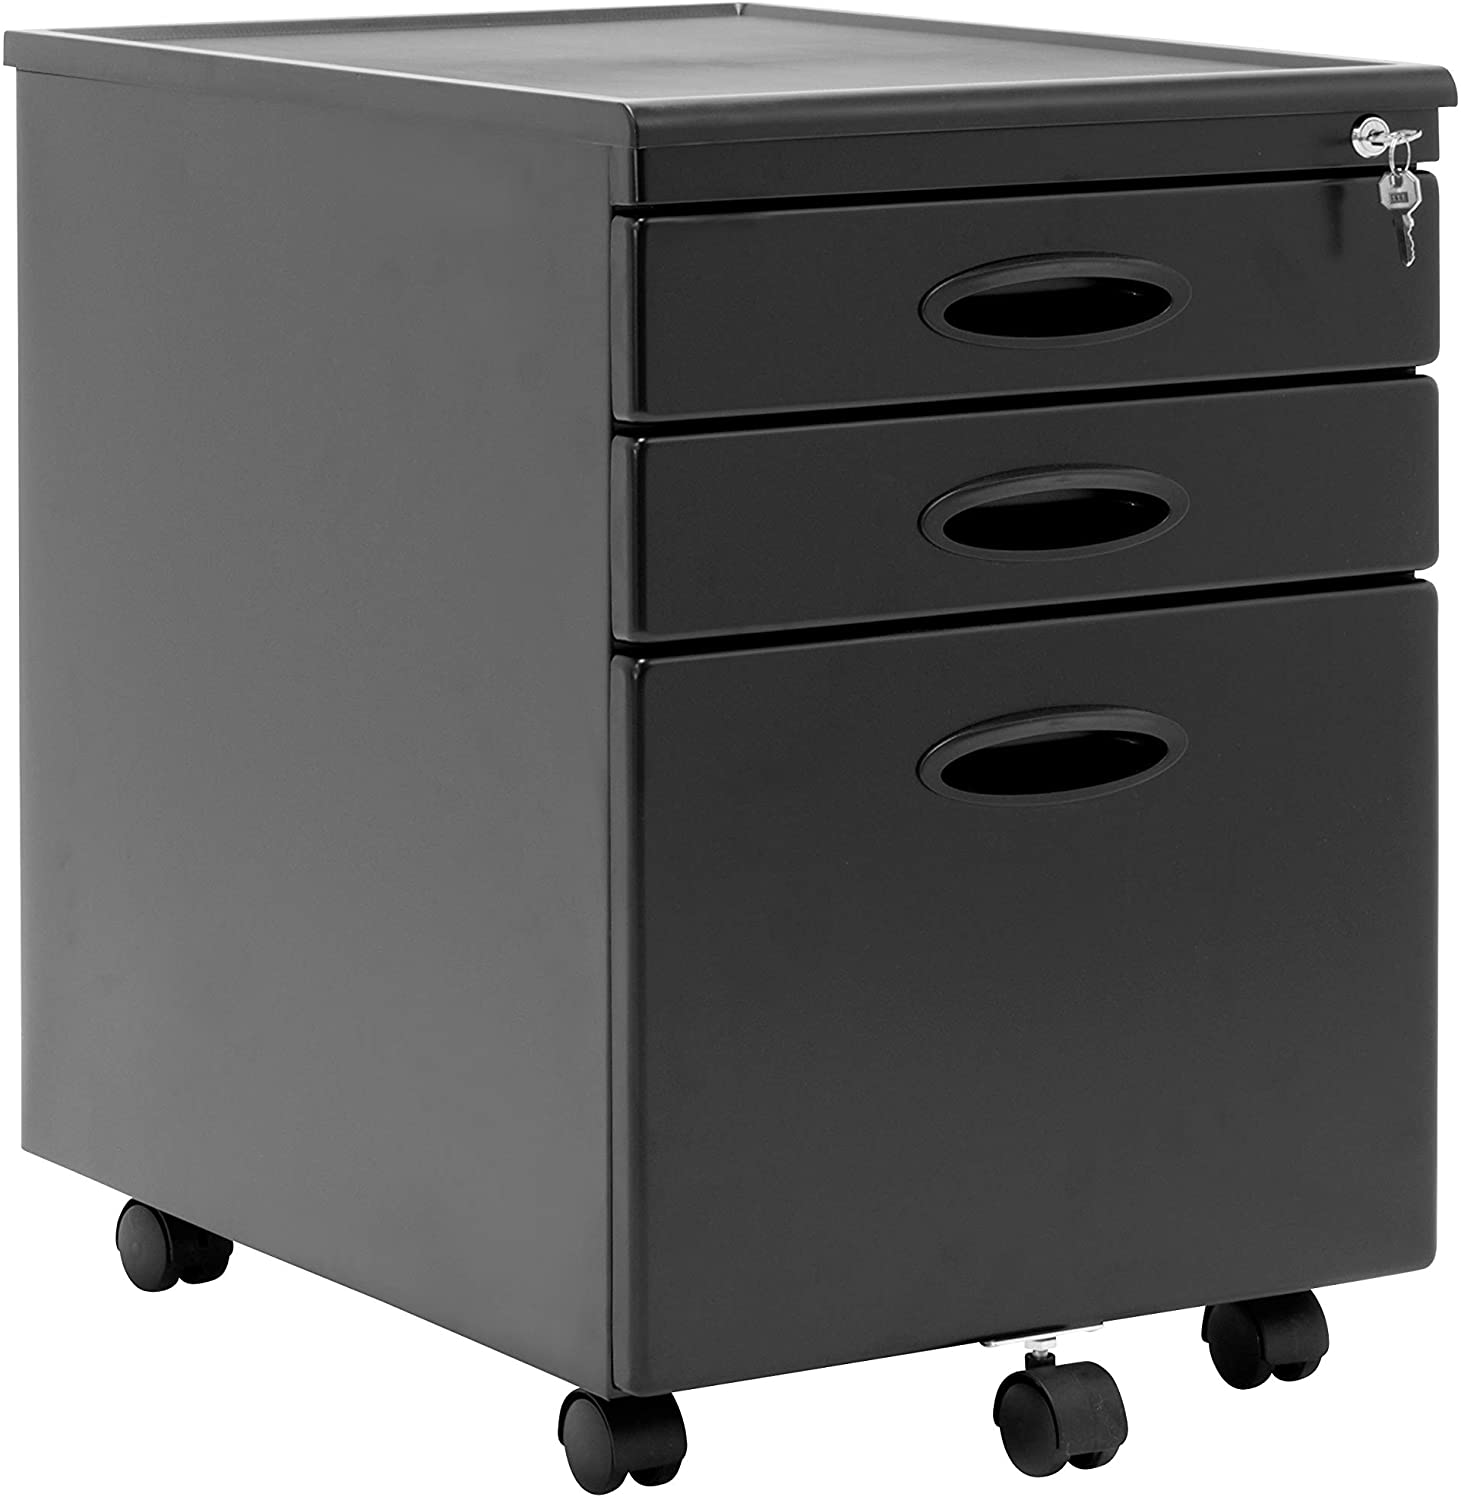 Calico Designs Metal Full Extension Locking 3 Drawer Mobile File Cabinet Assembled Except Casters For Legal Or Letter Files With Supply Organizer Tray In Black Furniture Decor